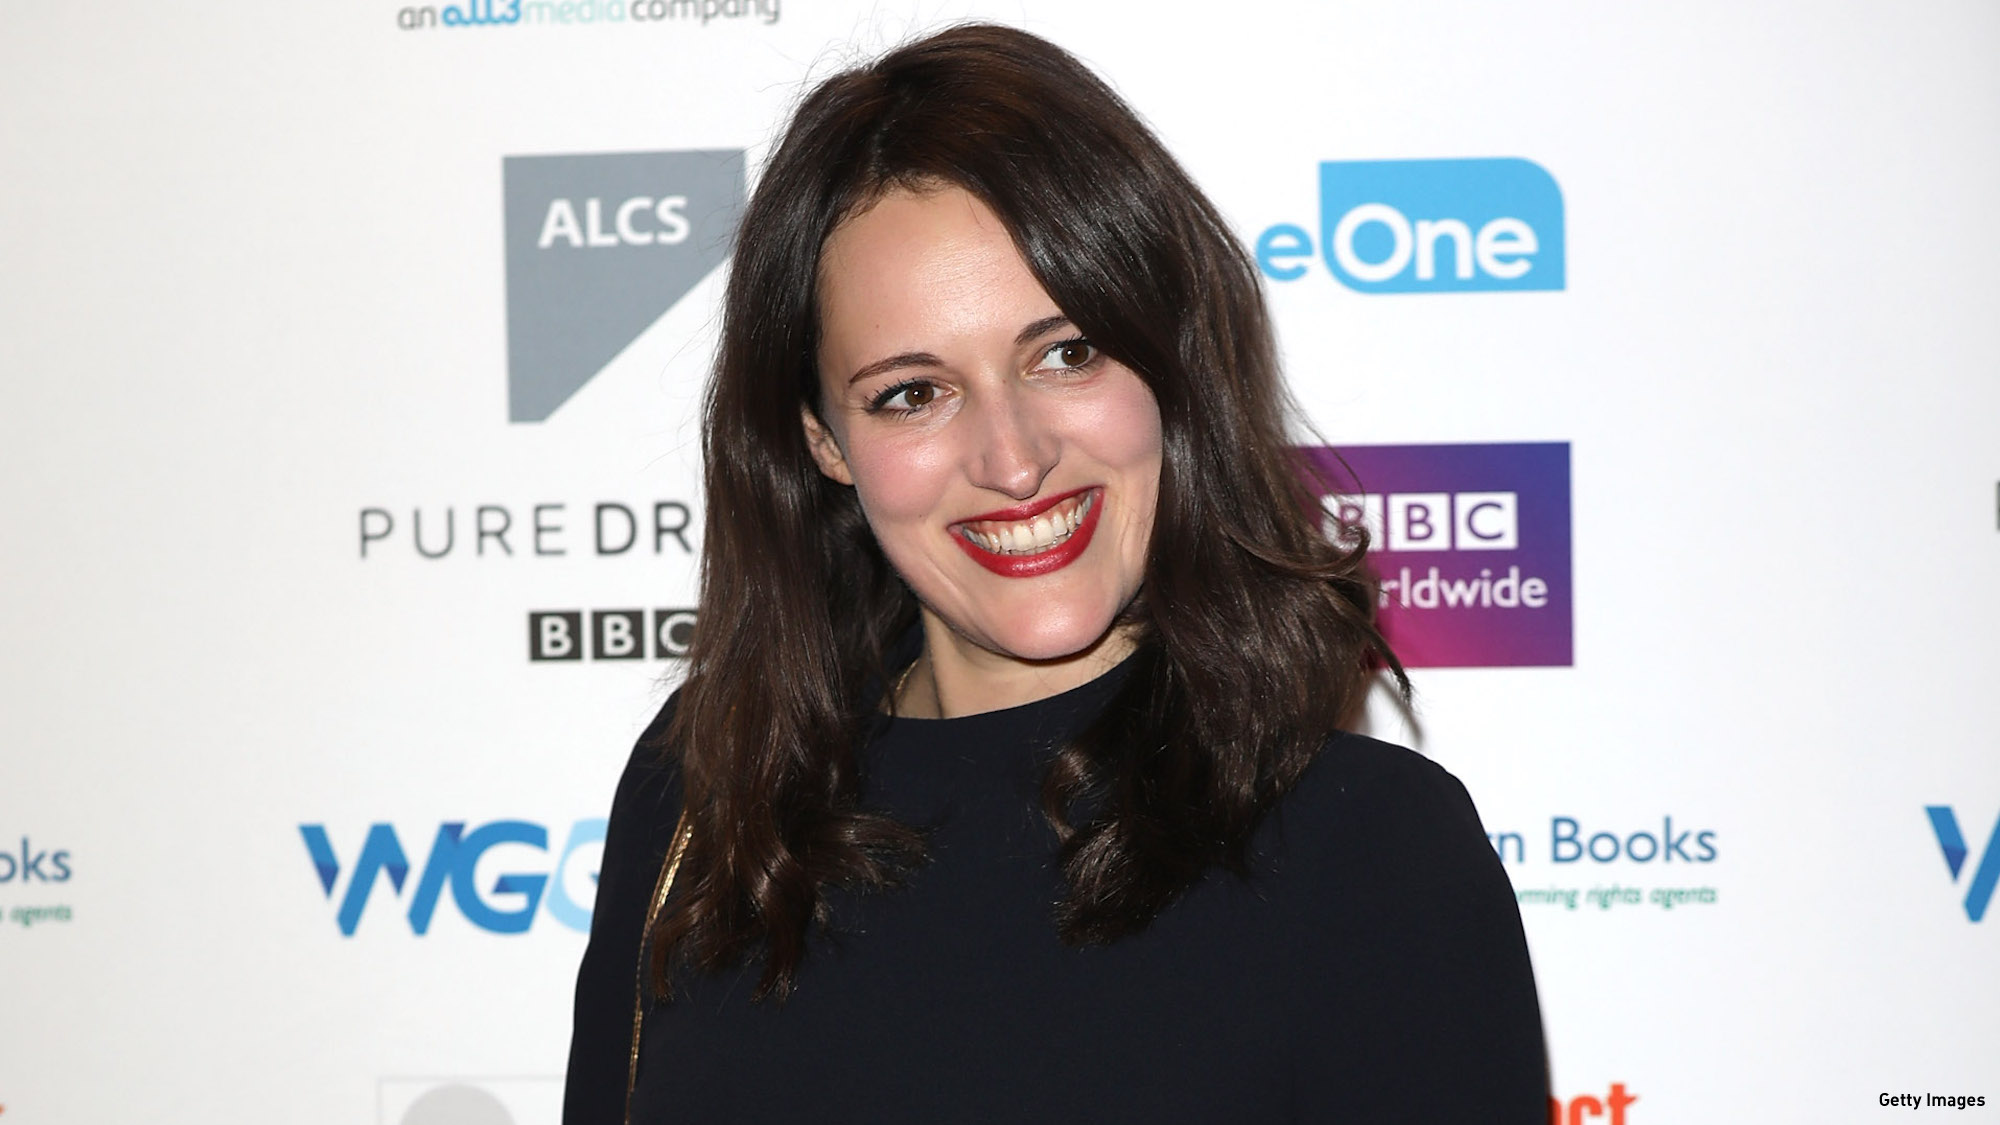 pictures Phoebe Waller-Bridge